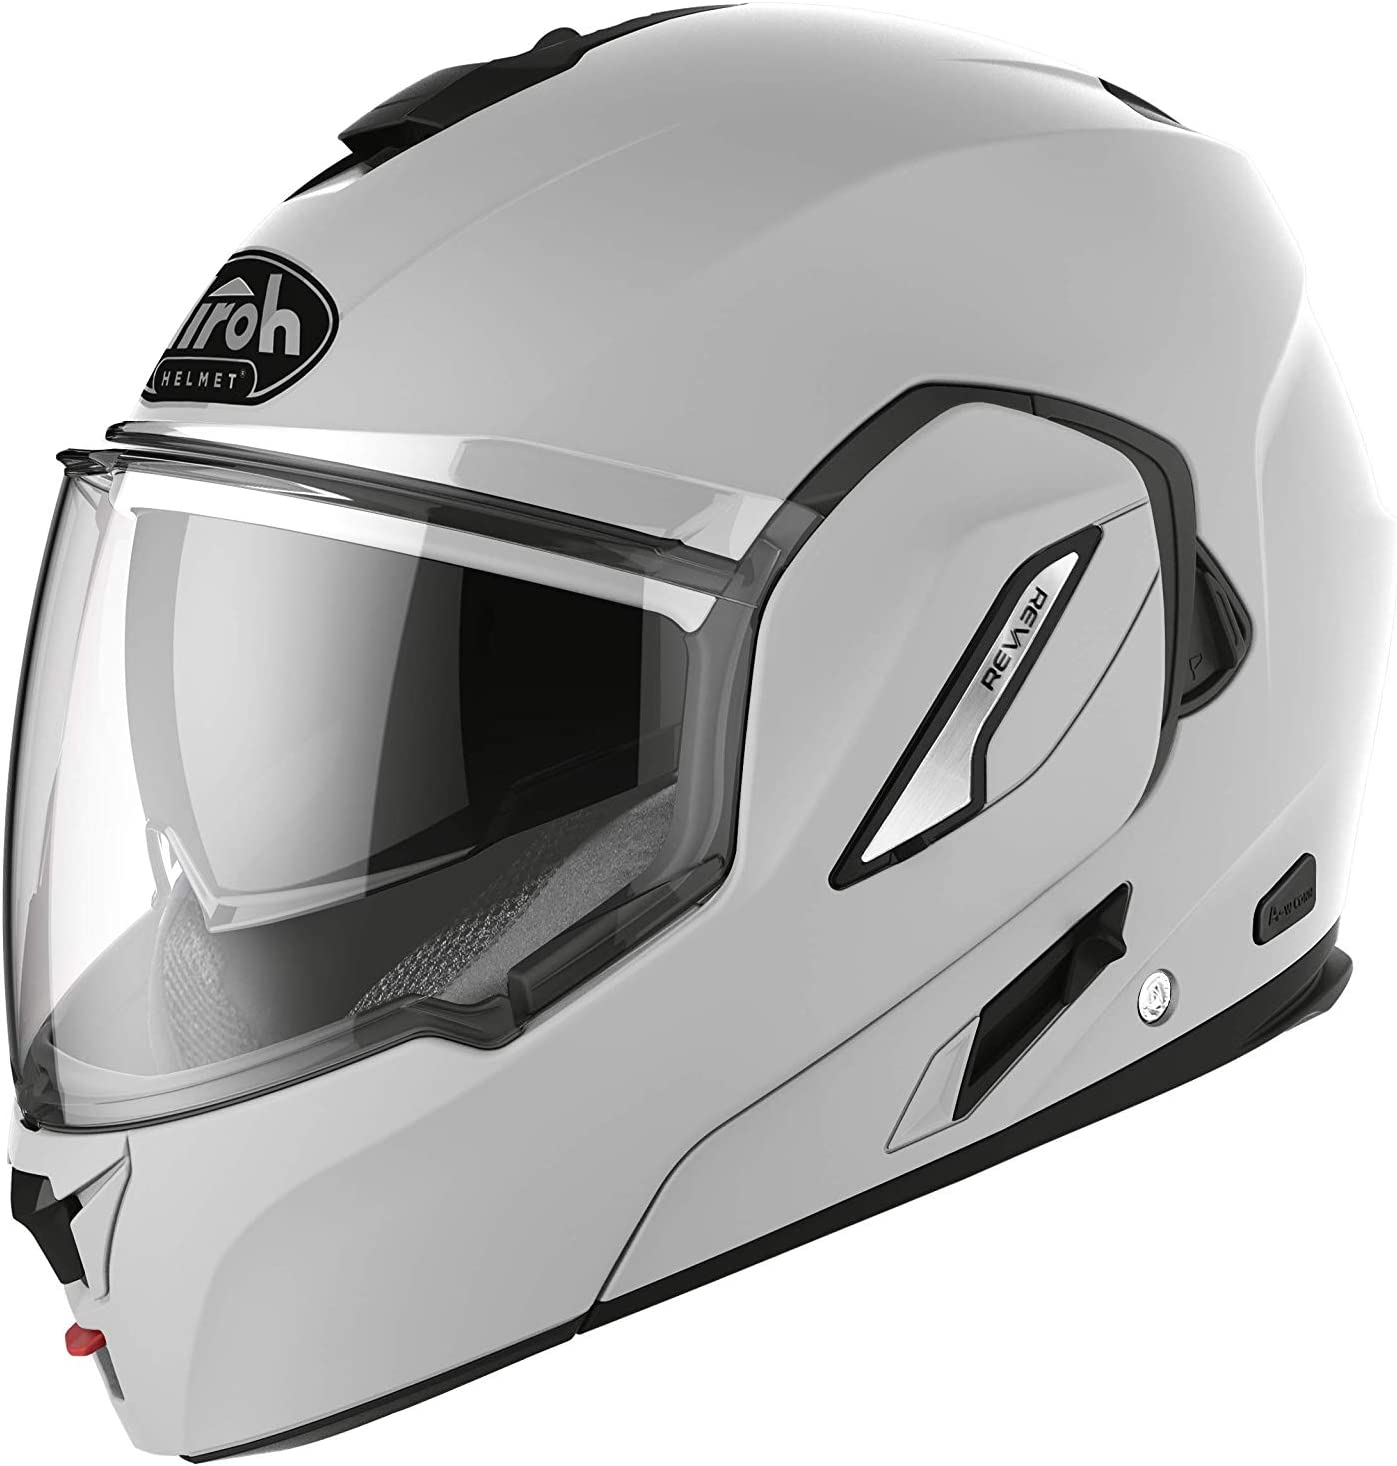 AIROH HELMET REV 19 COLOR CONCRETE GREY MATT S